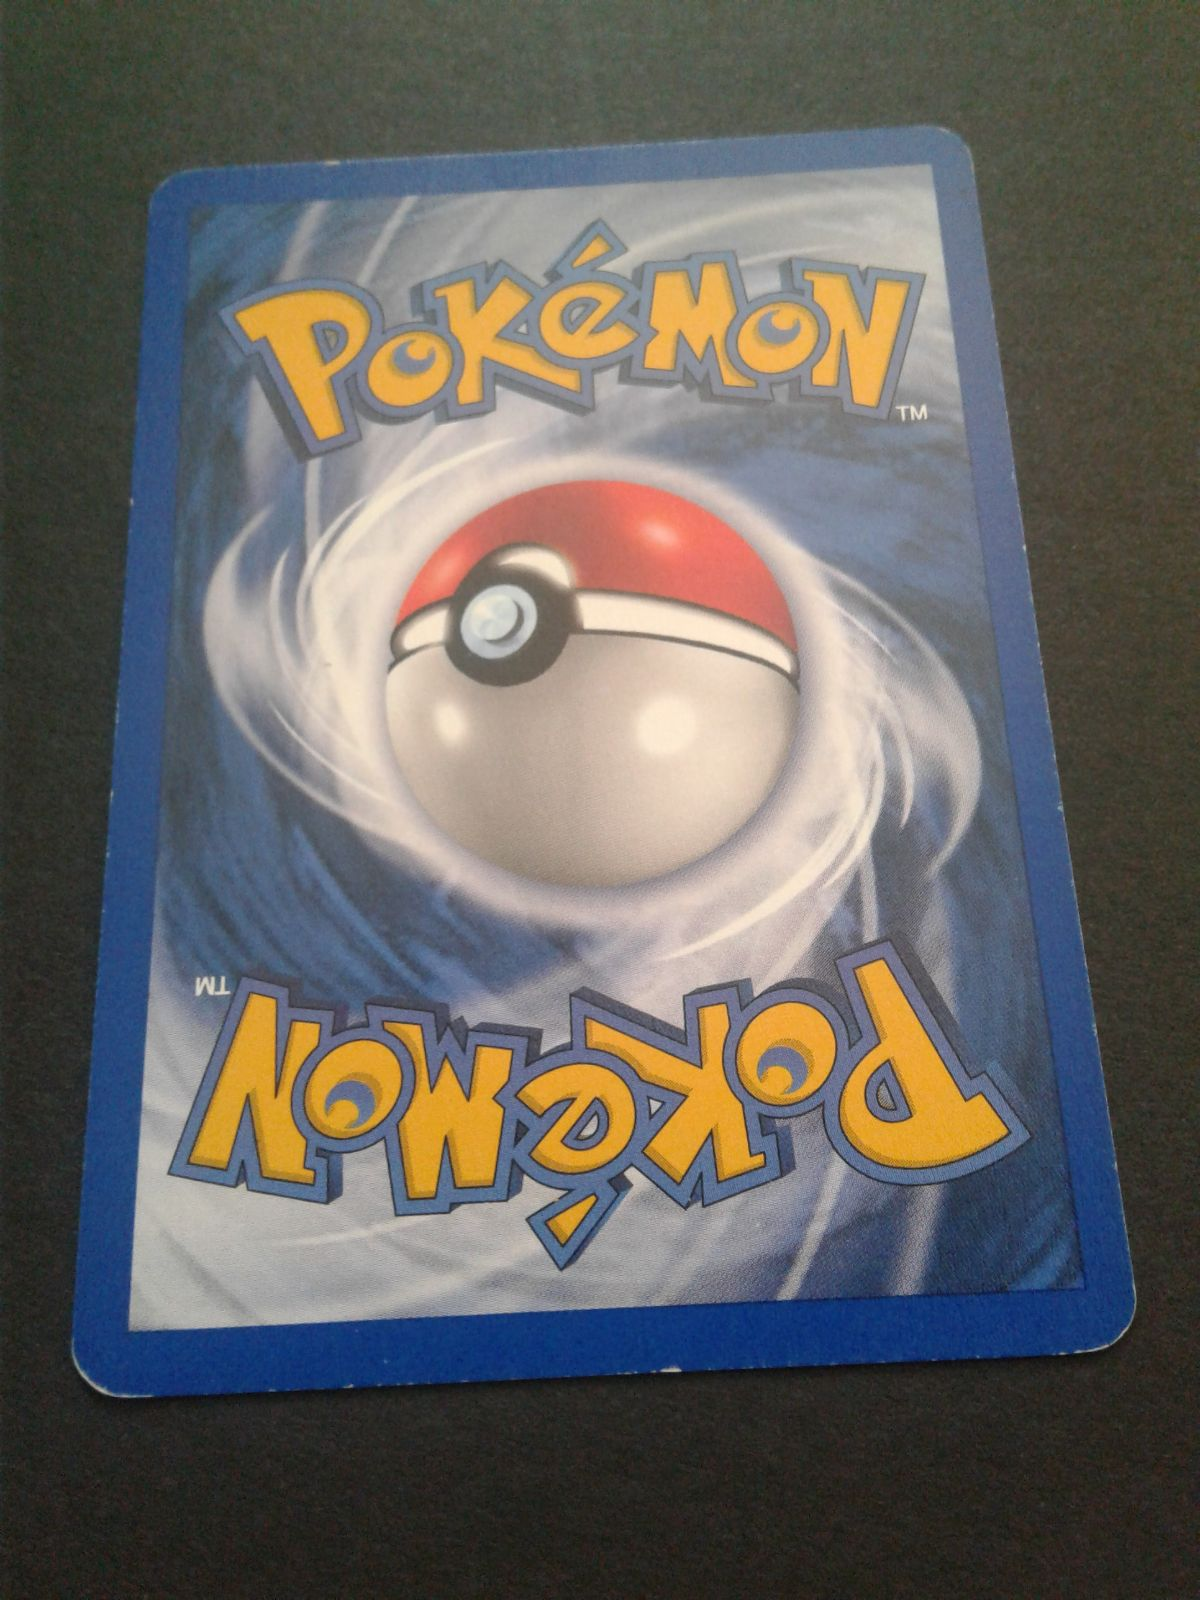 Reserved bundle for the pokehucker